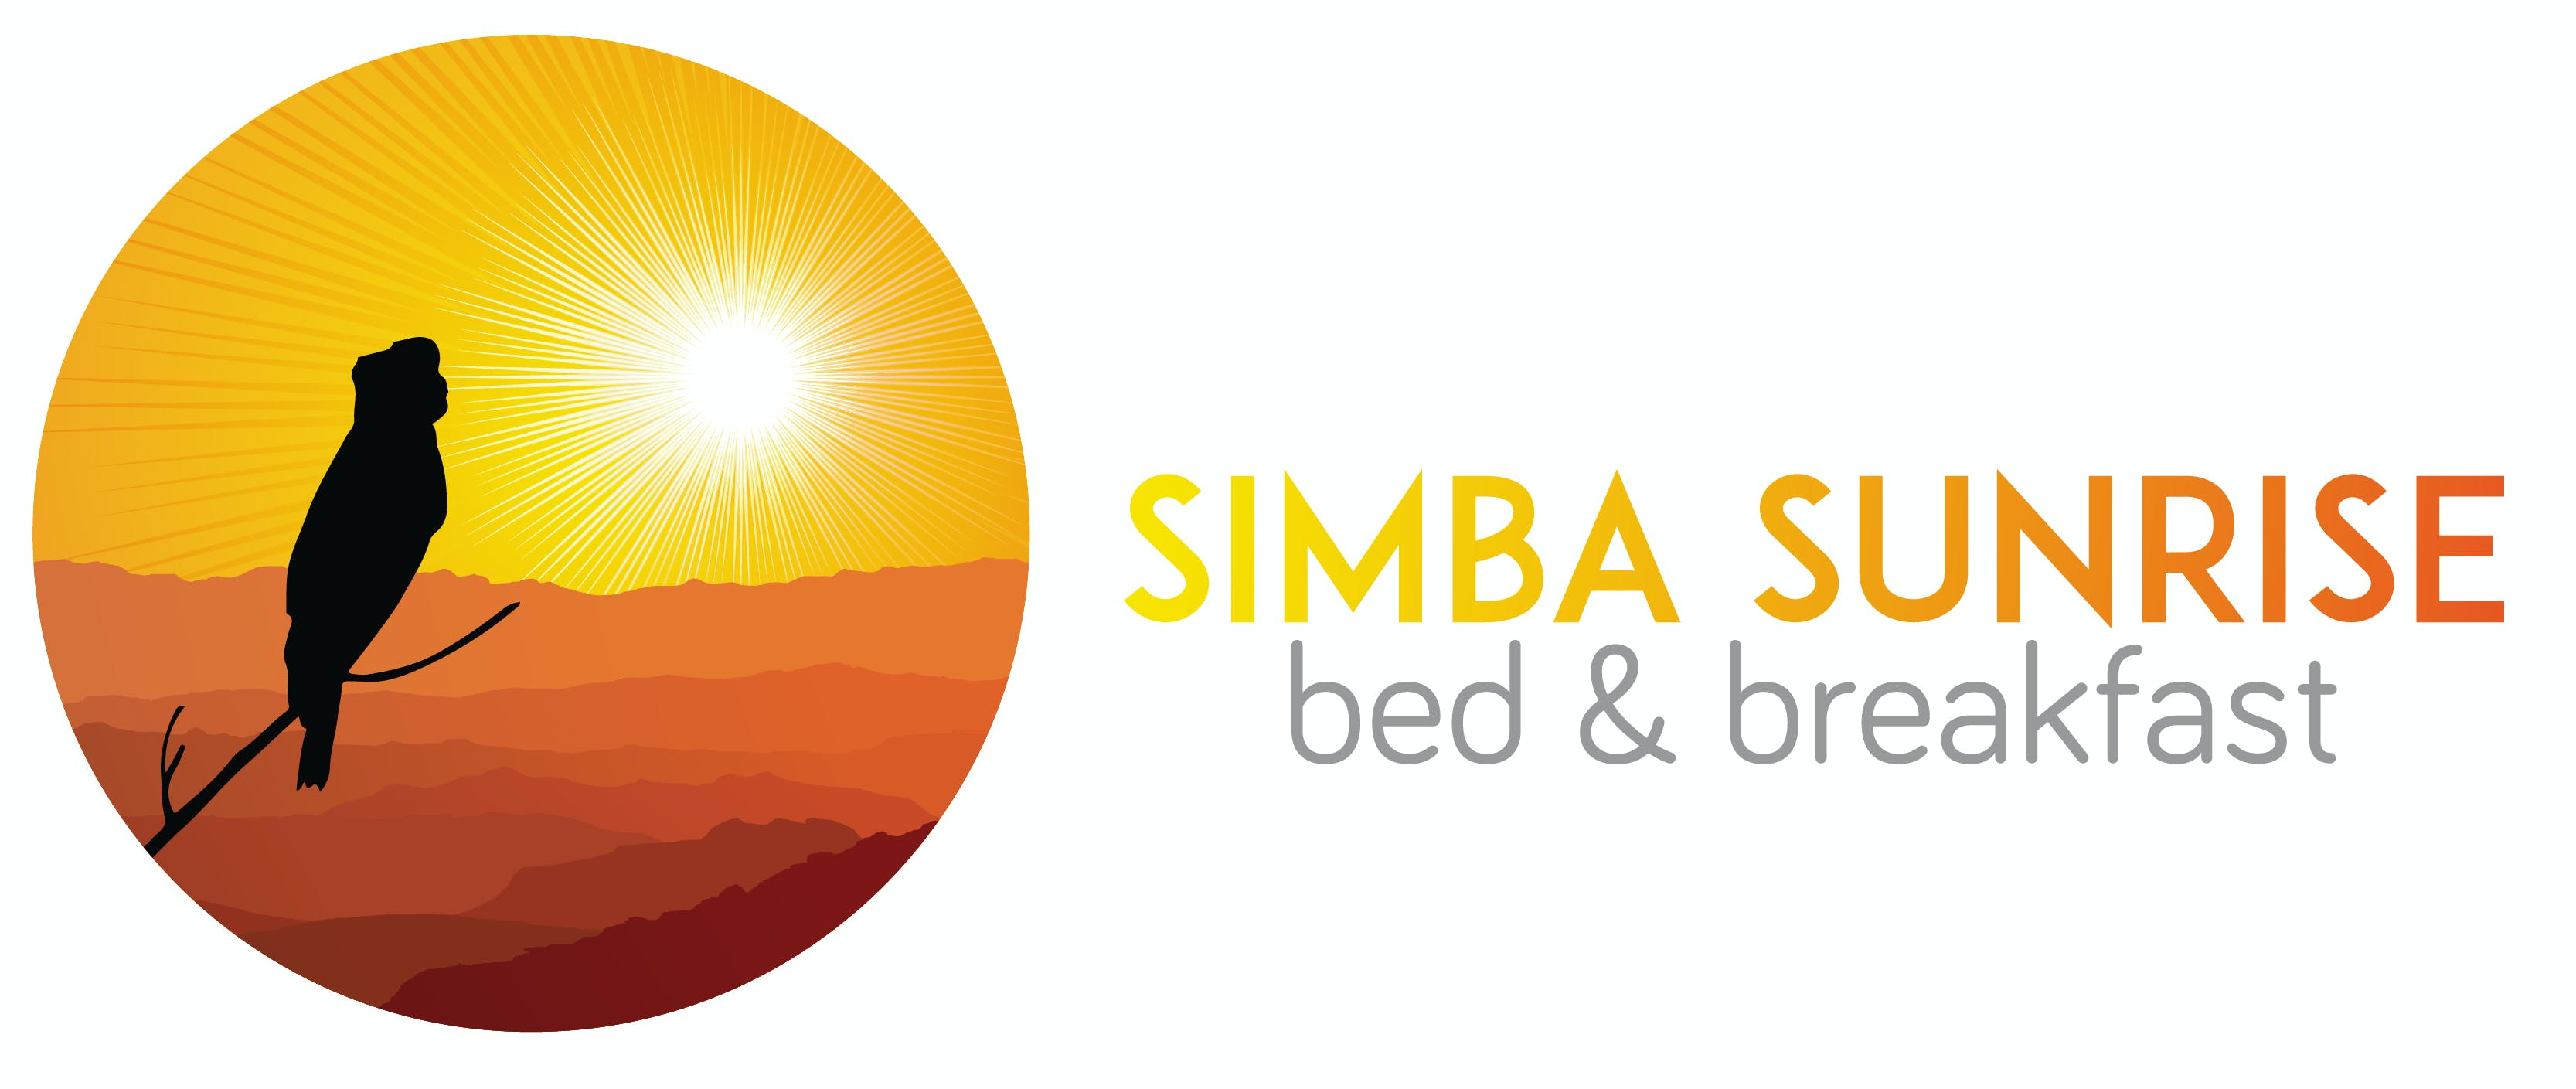 Simba Sunrise Bed & Breakfast(辛巴日出住宿加早餐旅馆)